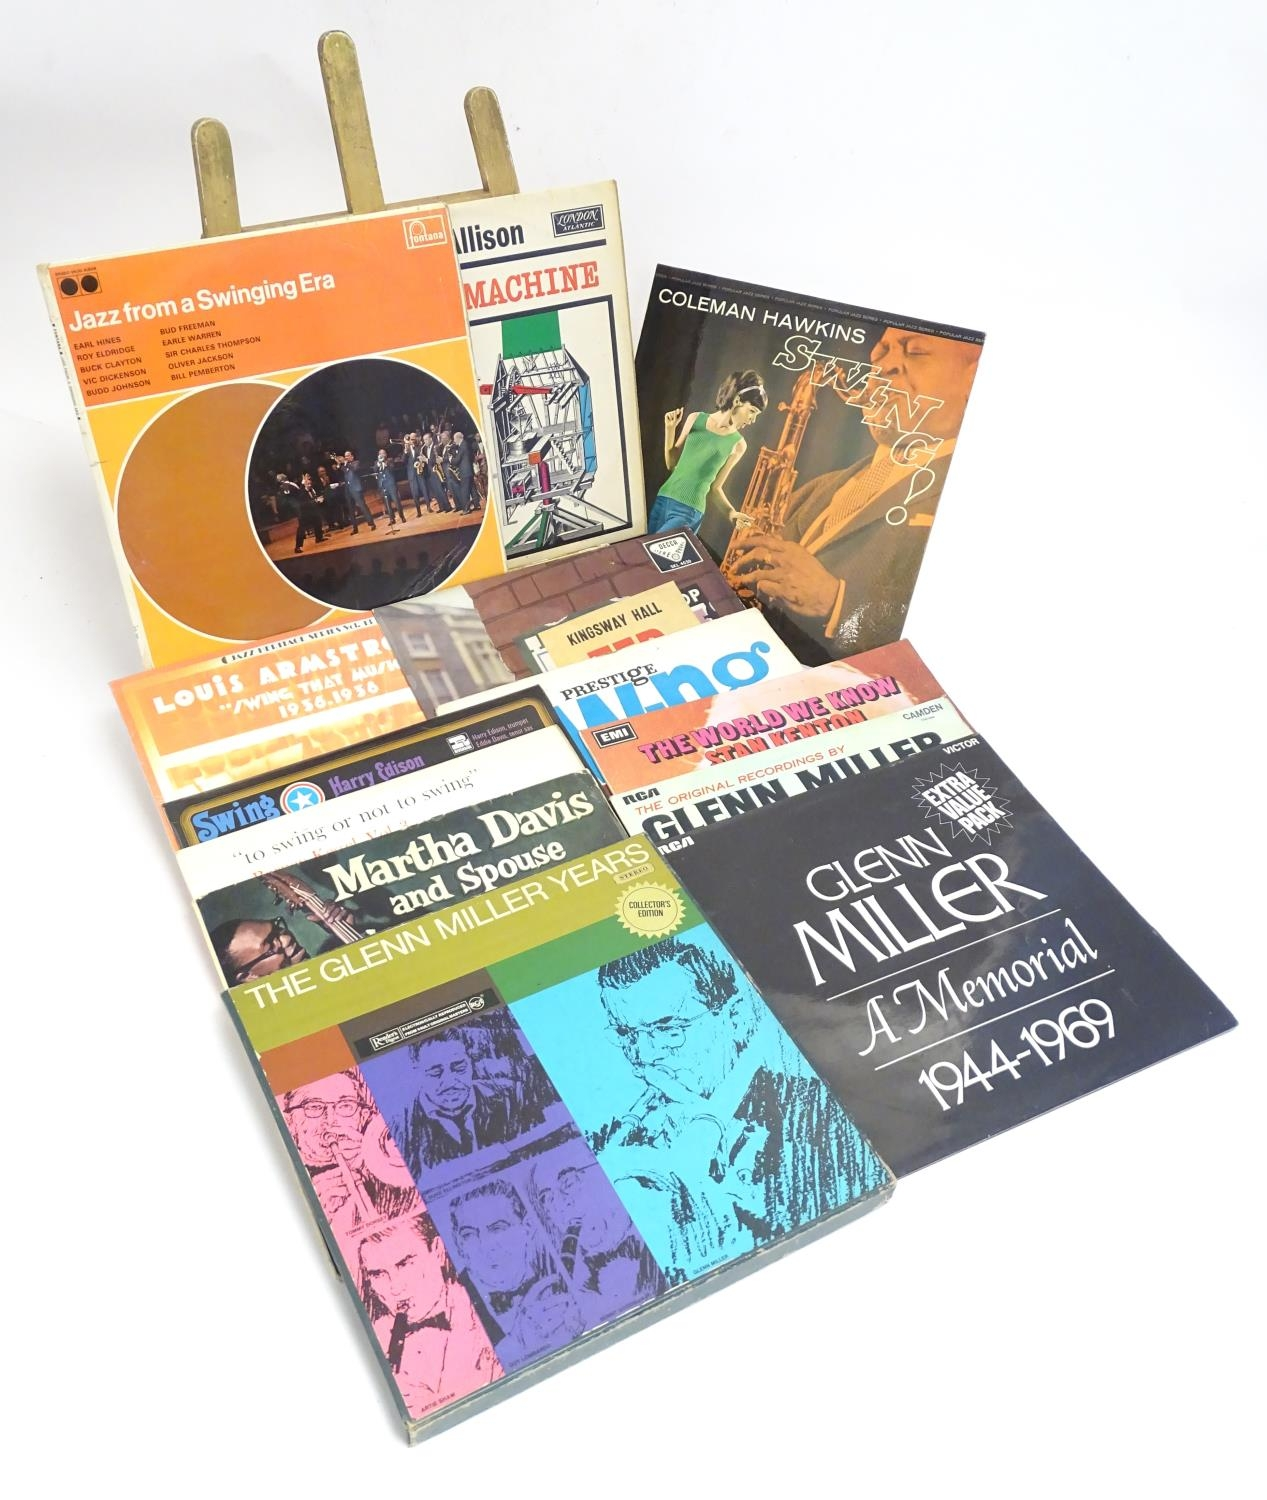 A collection of 20thC 33 rpm Vinyl records / LPs, Jazz, Big Band, Swing, comprising: Swing! (Coleman